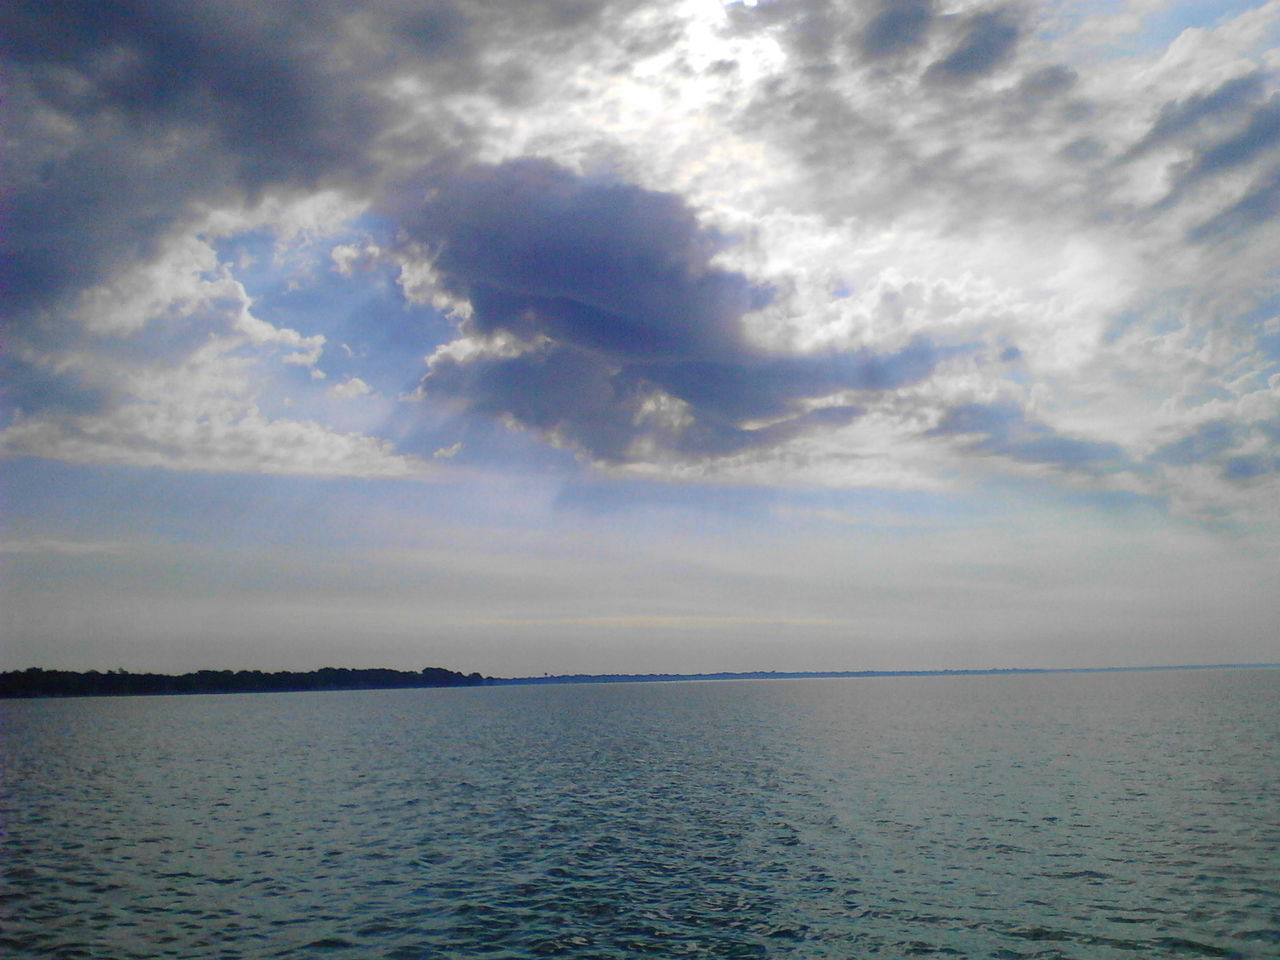 sea, tranquility, beauty in nature, scenics, tranquil scene, water, nature, sky, horizon over water, cloud - sky, idyllic, no people, outdoors, waterfront, day